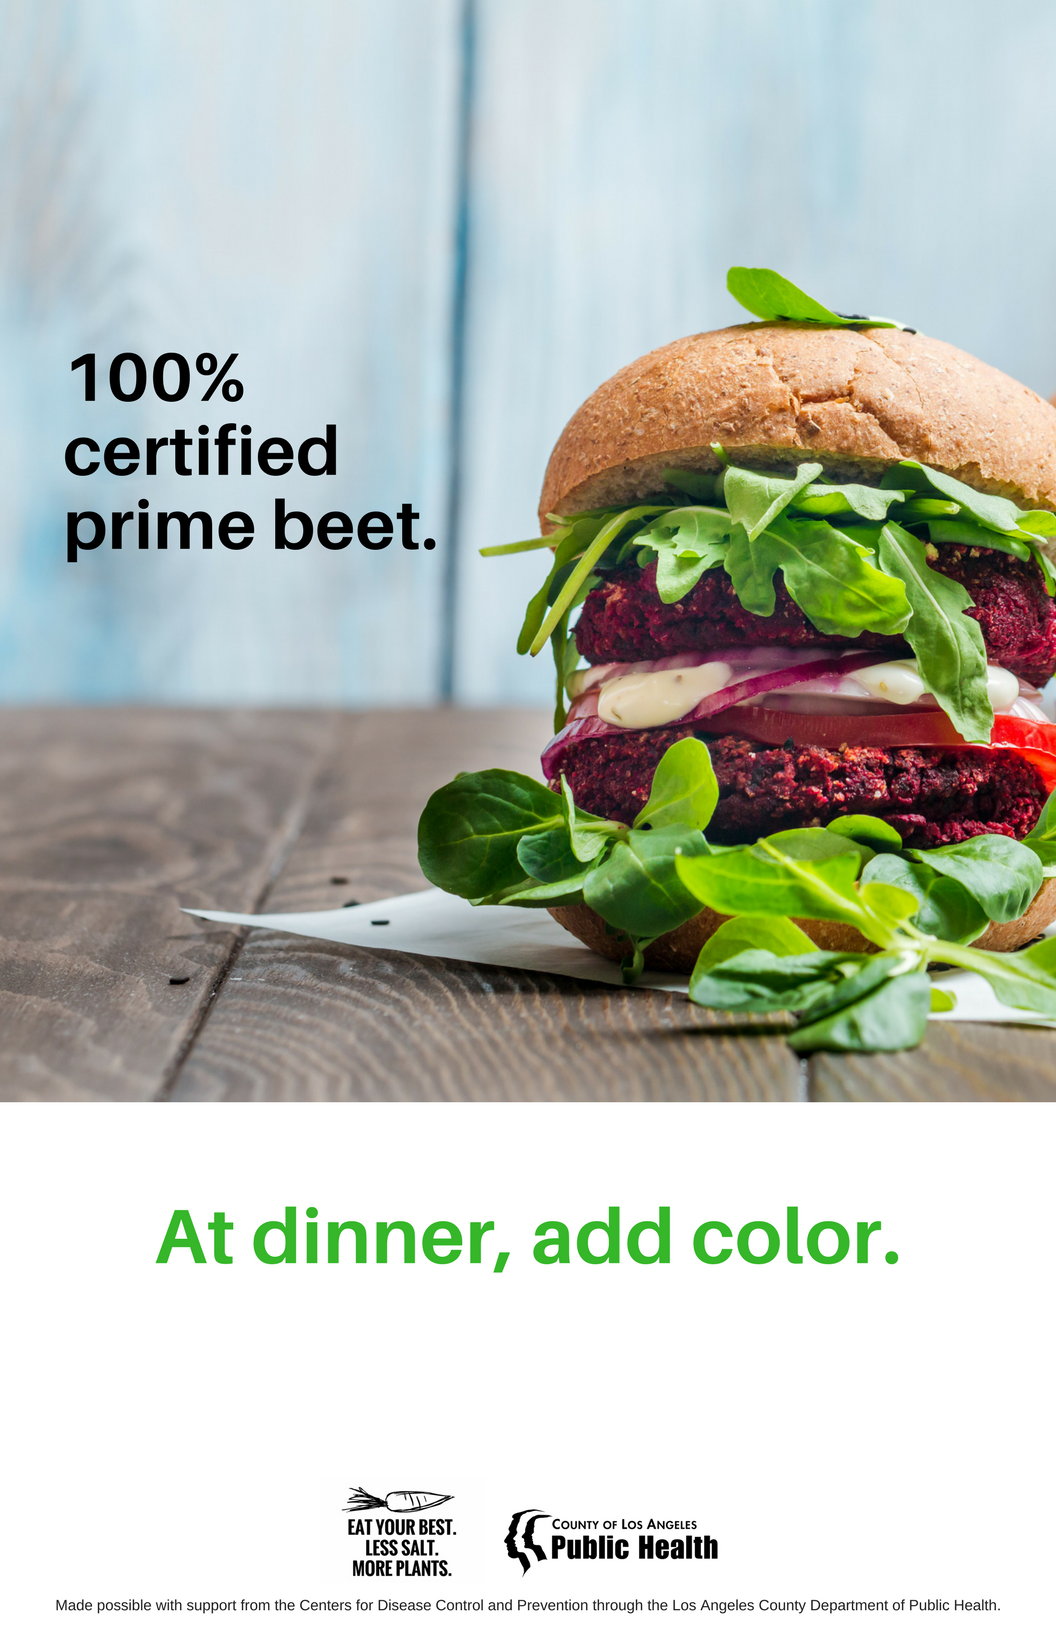 Sign reading 100% Prime Beet: At dinner, add color.